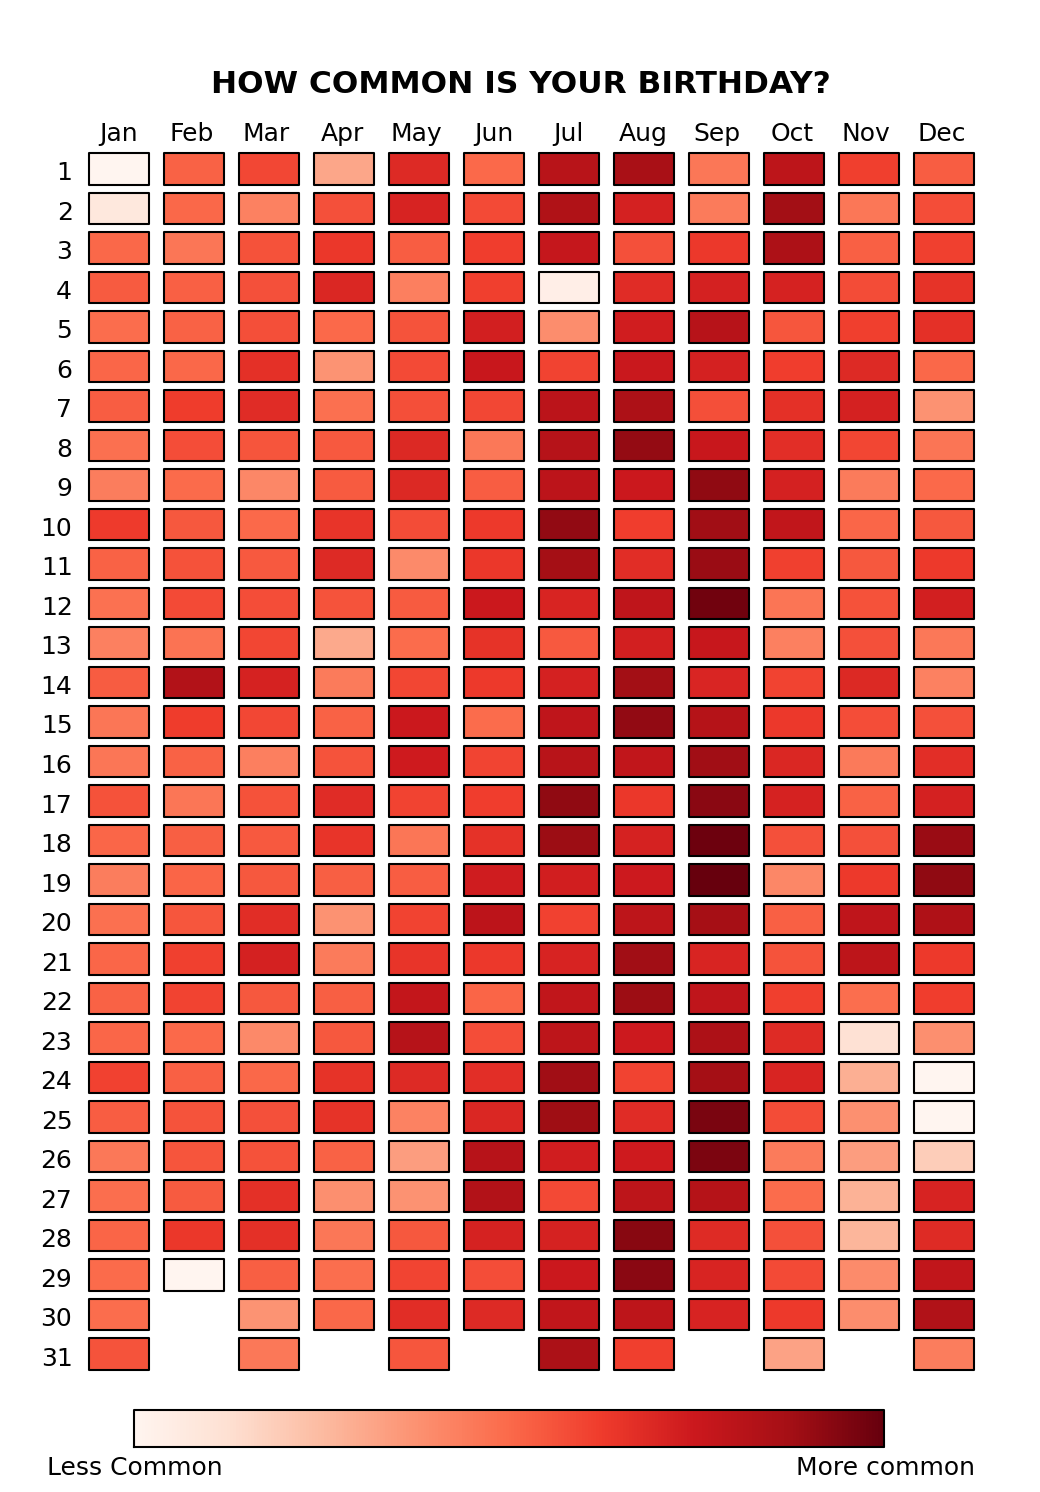 How Common is Your Birthday Graphing Birth Patterns in the USA ...